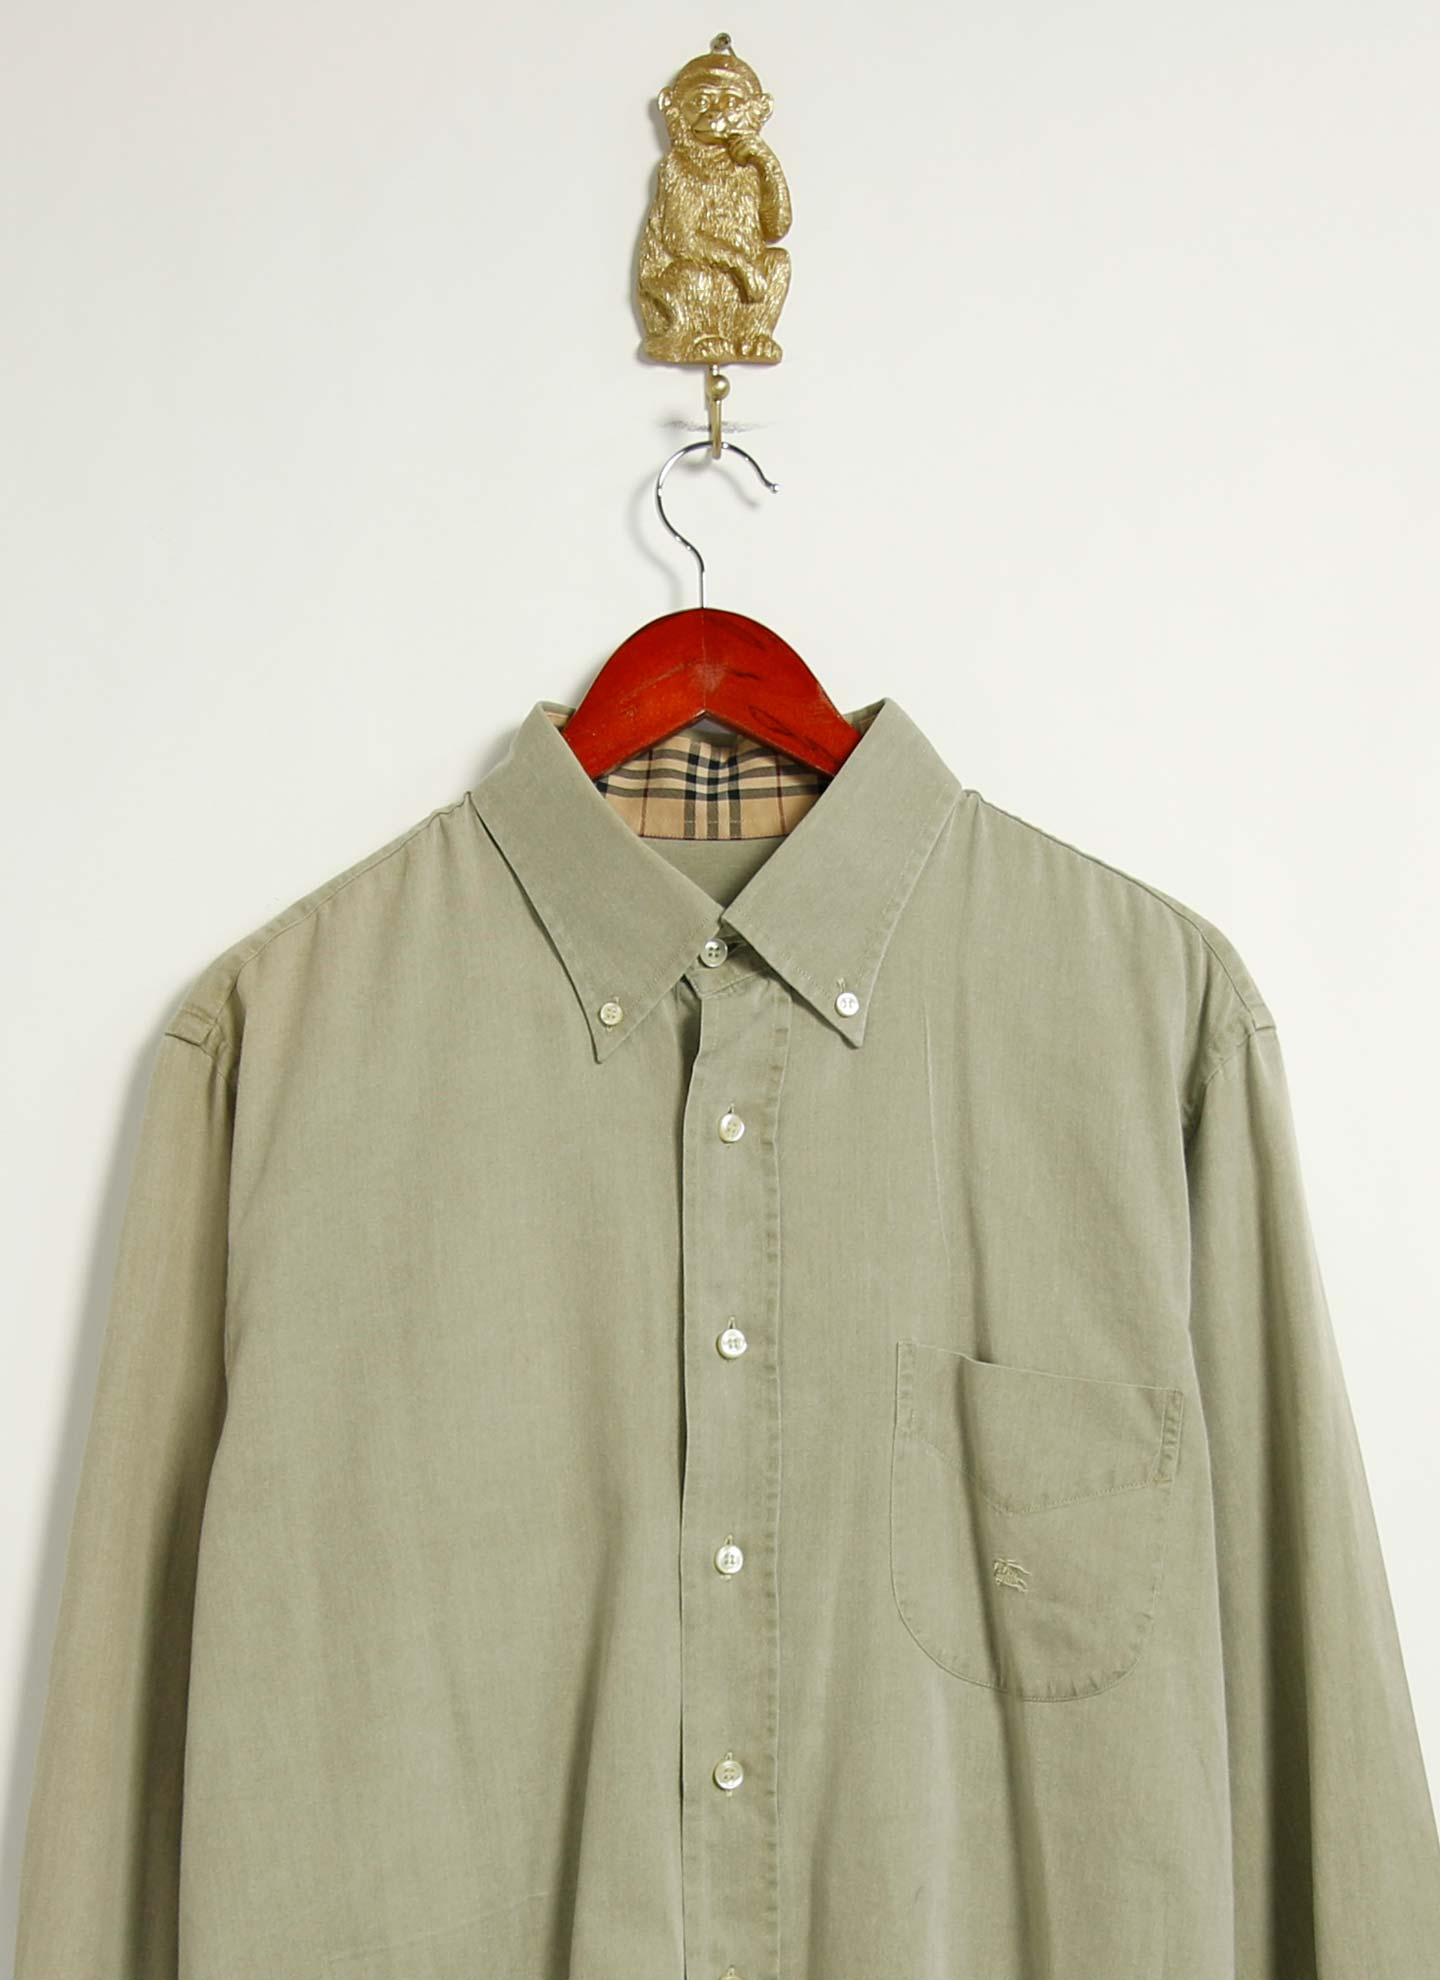 Burberry Shirt